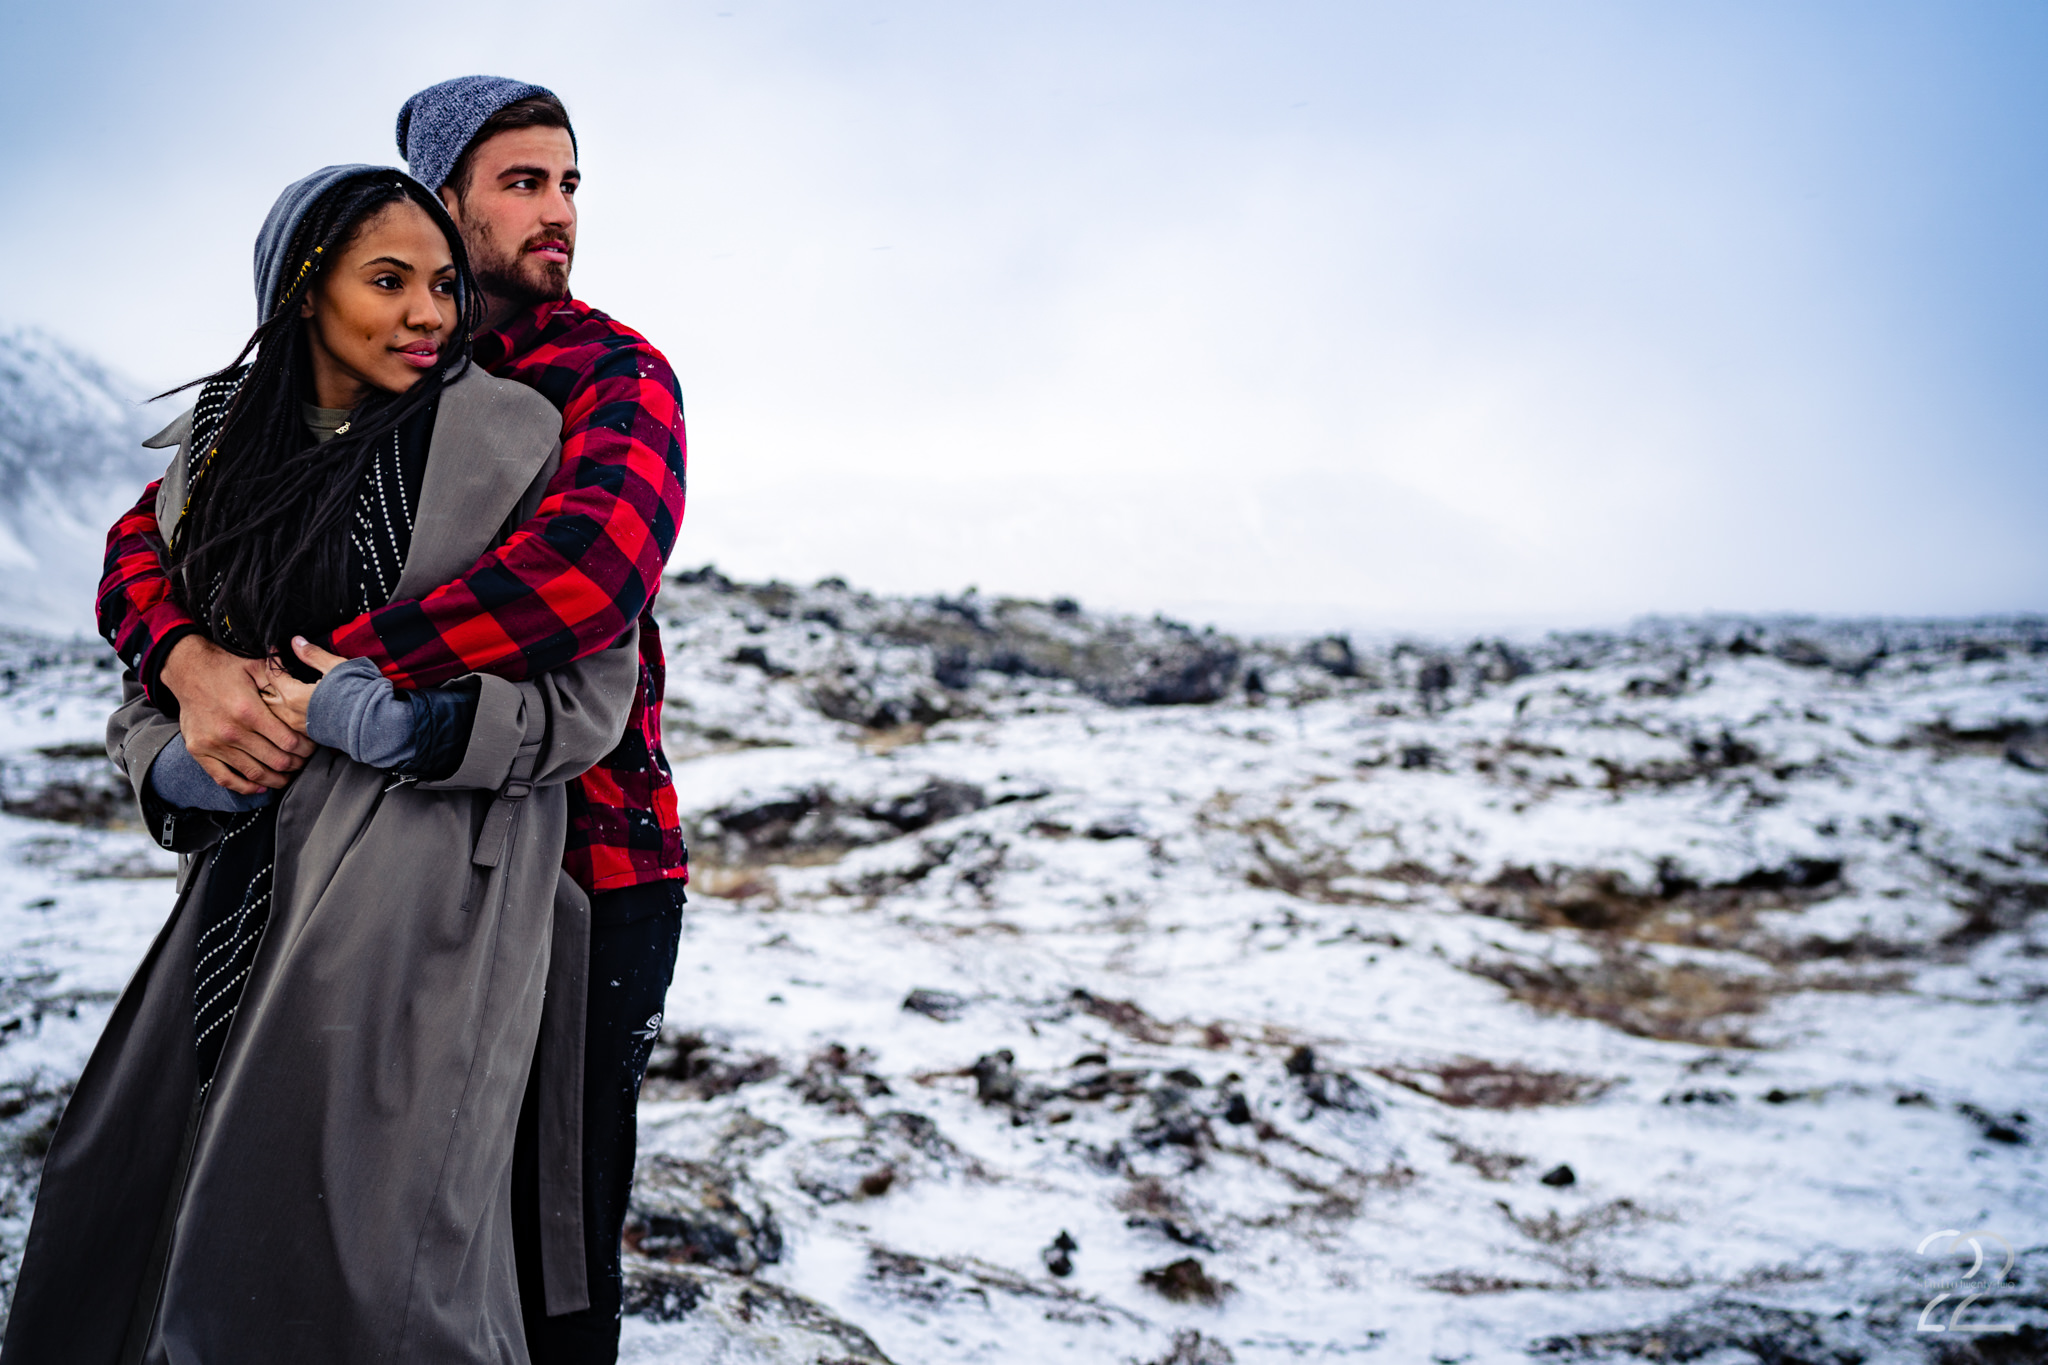 Iceland Engagement Photos - Studio 22 Photography